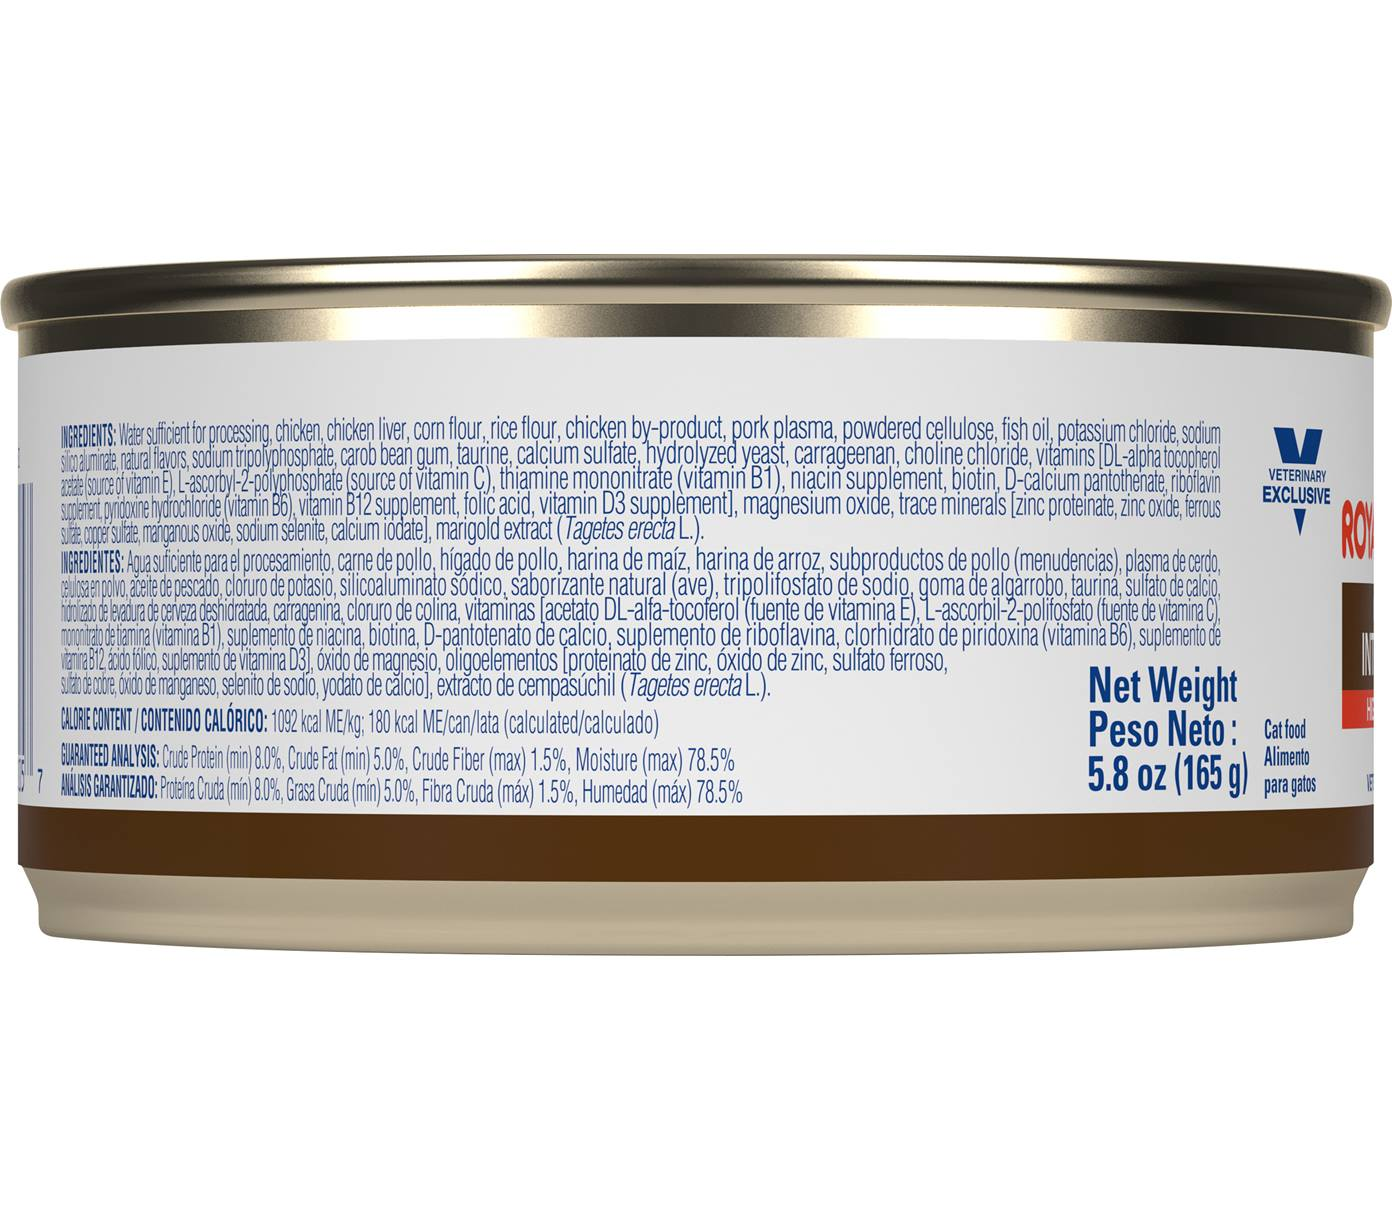 ROYAL CANIN VETERINARY DIET® Feline Gastrointestinal High Energy in gel canned cat food